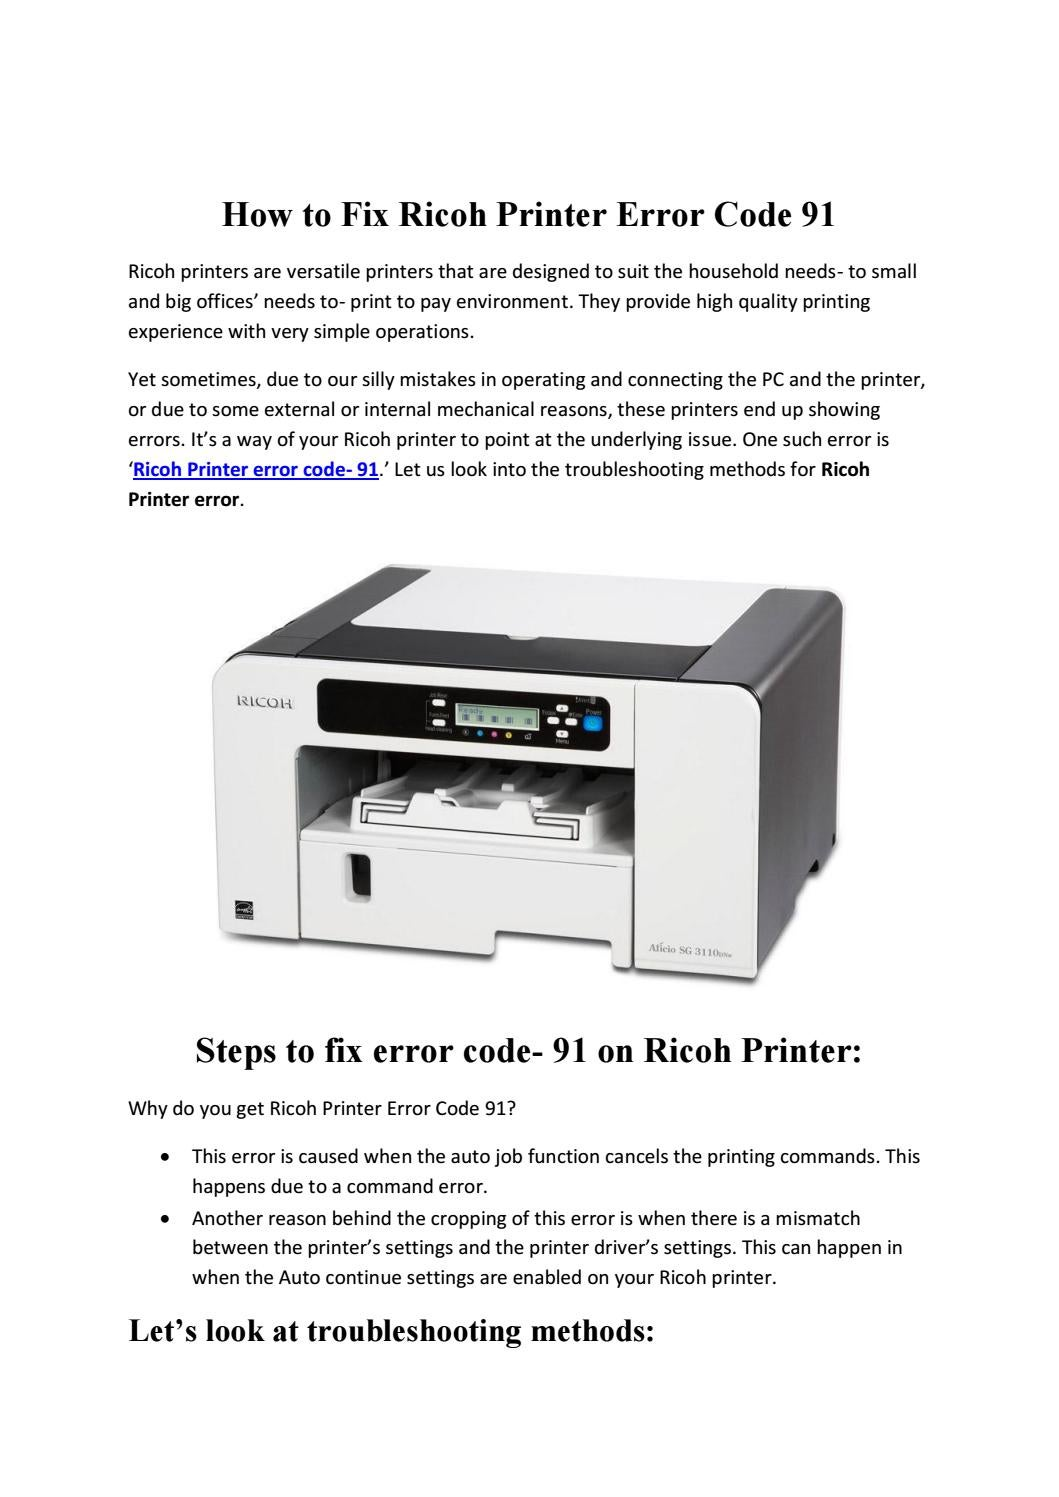 How to Fix Ricoh Printer Error Code 91 by Cindy Guerra - issuu